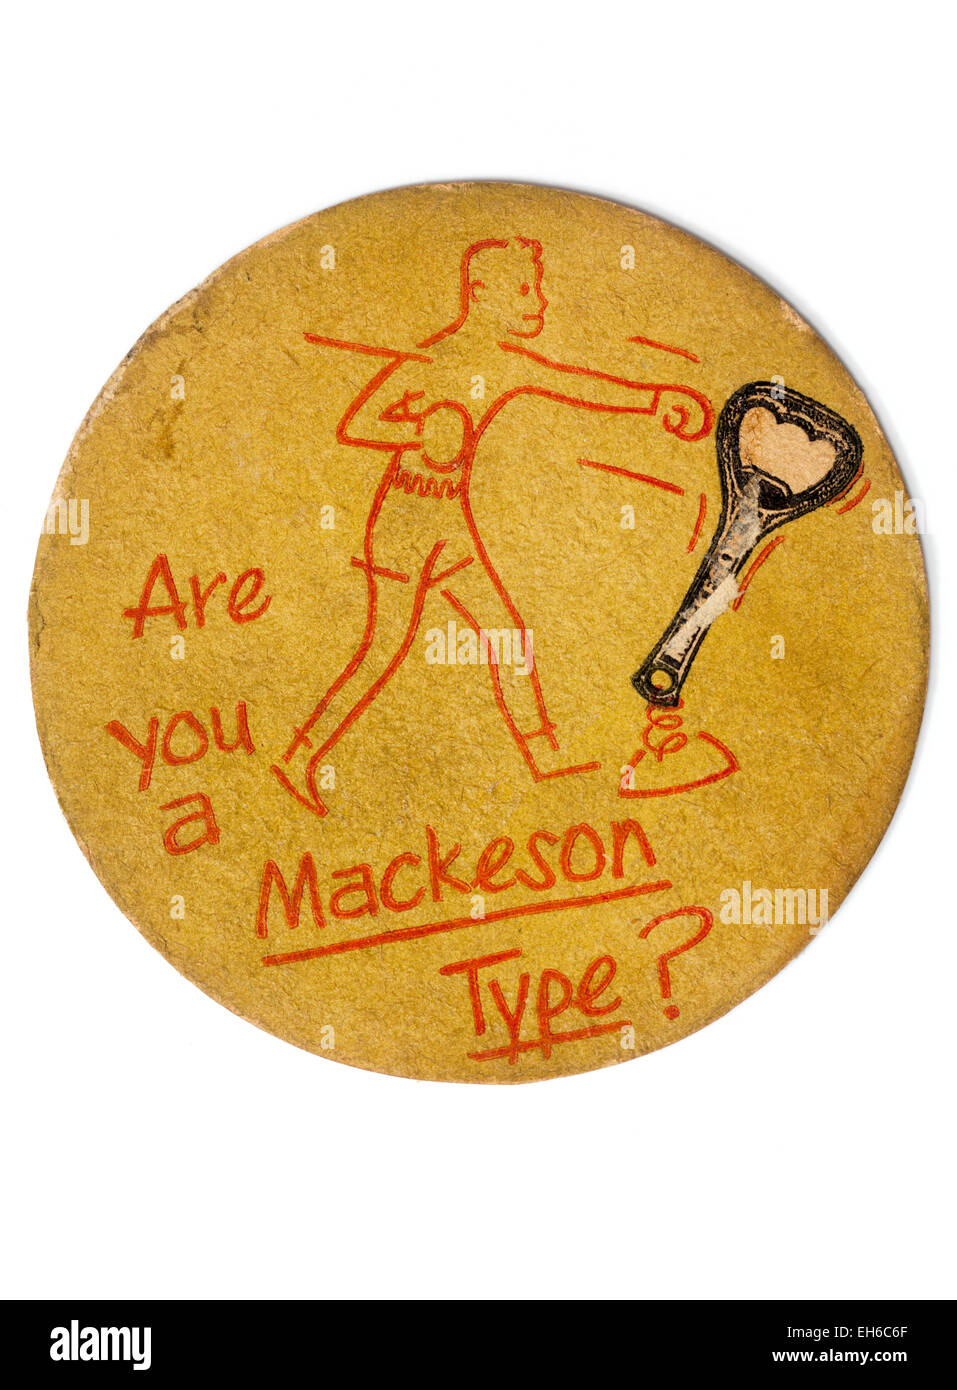 Vintage British Beermat Advertising Mackeson Beer Stock Photo